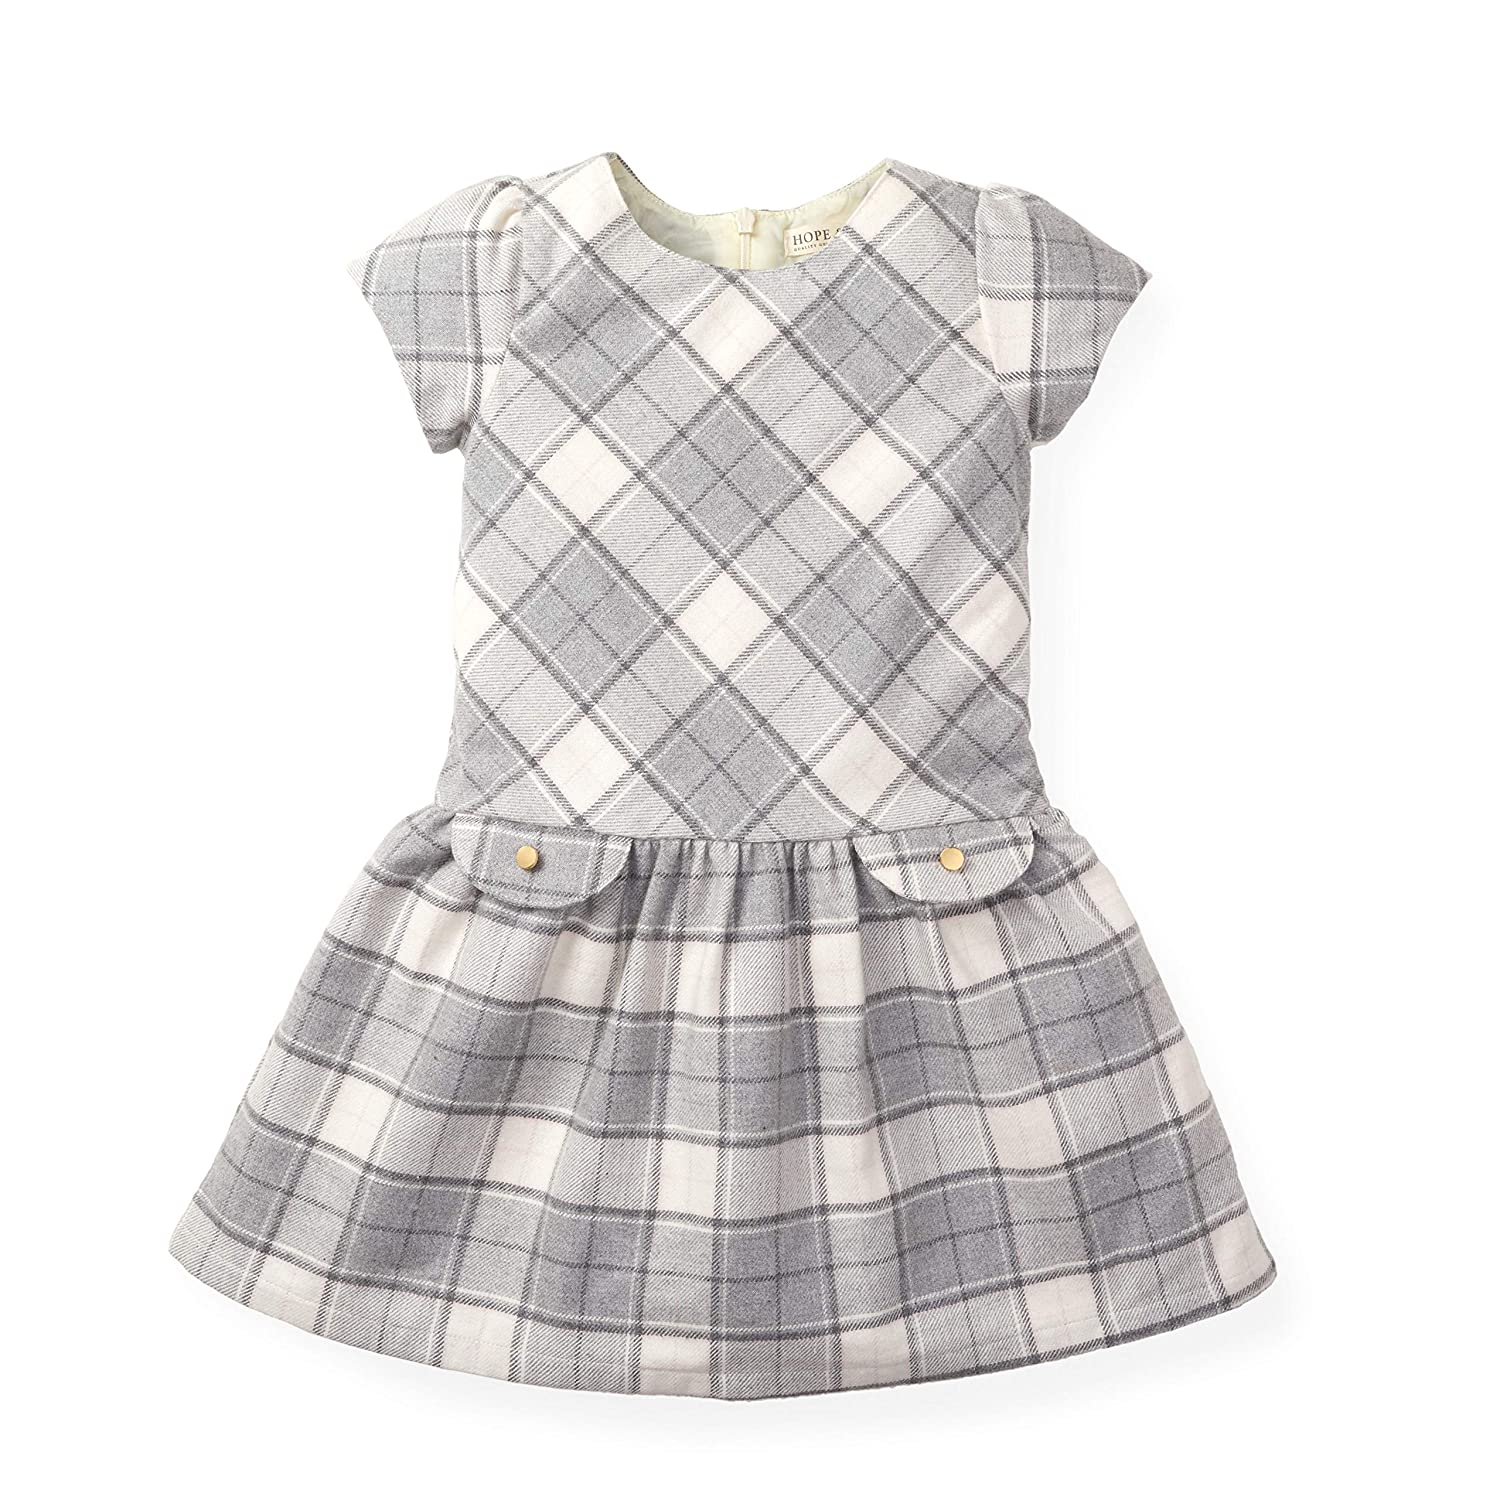 Vintage Style Children's Clothing: Girls, Boys, Baby, Toddler Hope & Henry Girls Drop Waist Dress $25.95 AT vintagedancer.com